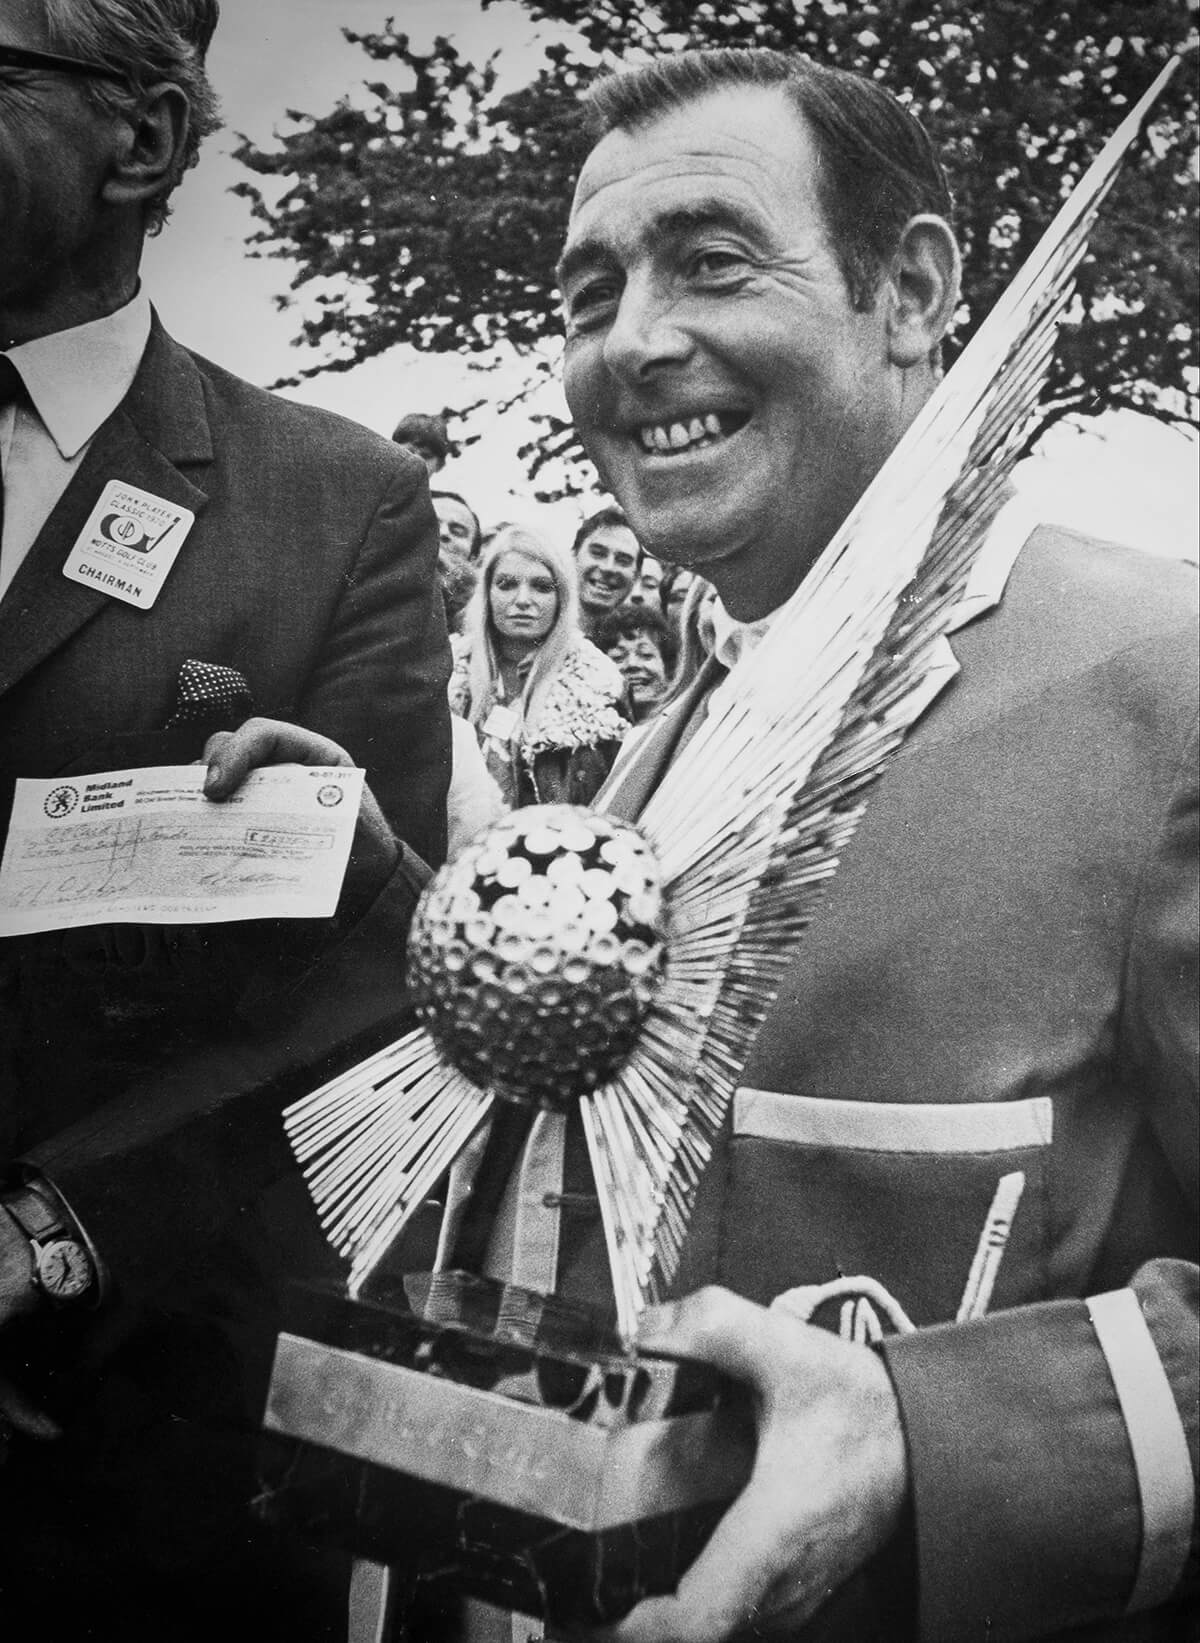 The John Player Classic at Notts. Golf Club (Hollinwell) September 1970. Christy O'Connor with a score of 286 (-2) defeated Tory Jacklin by one stroke to win the Trophy and a record winner's cheque of £25,000.